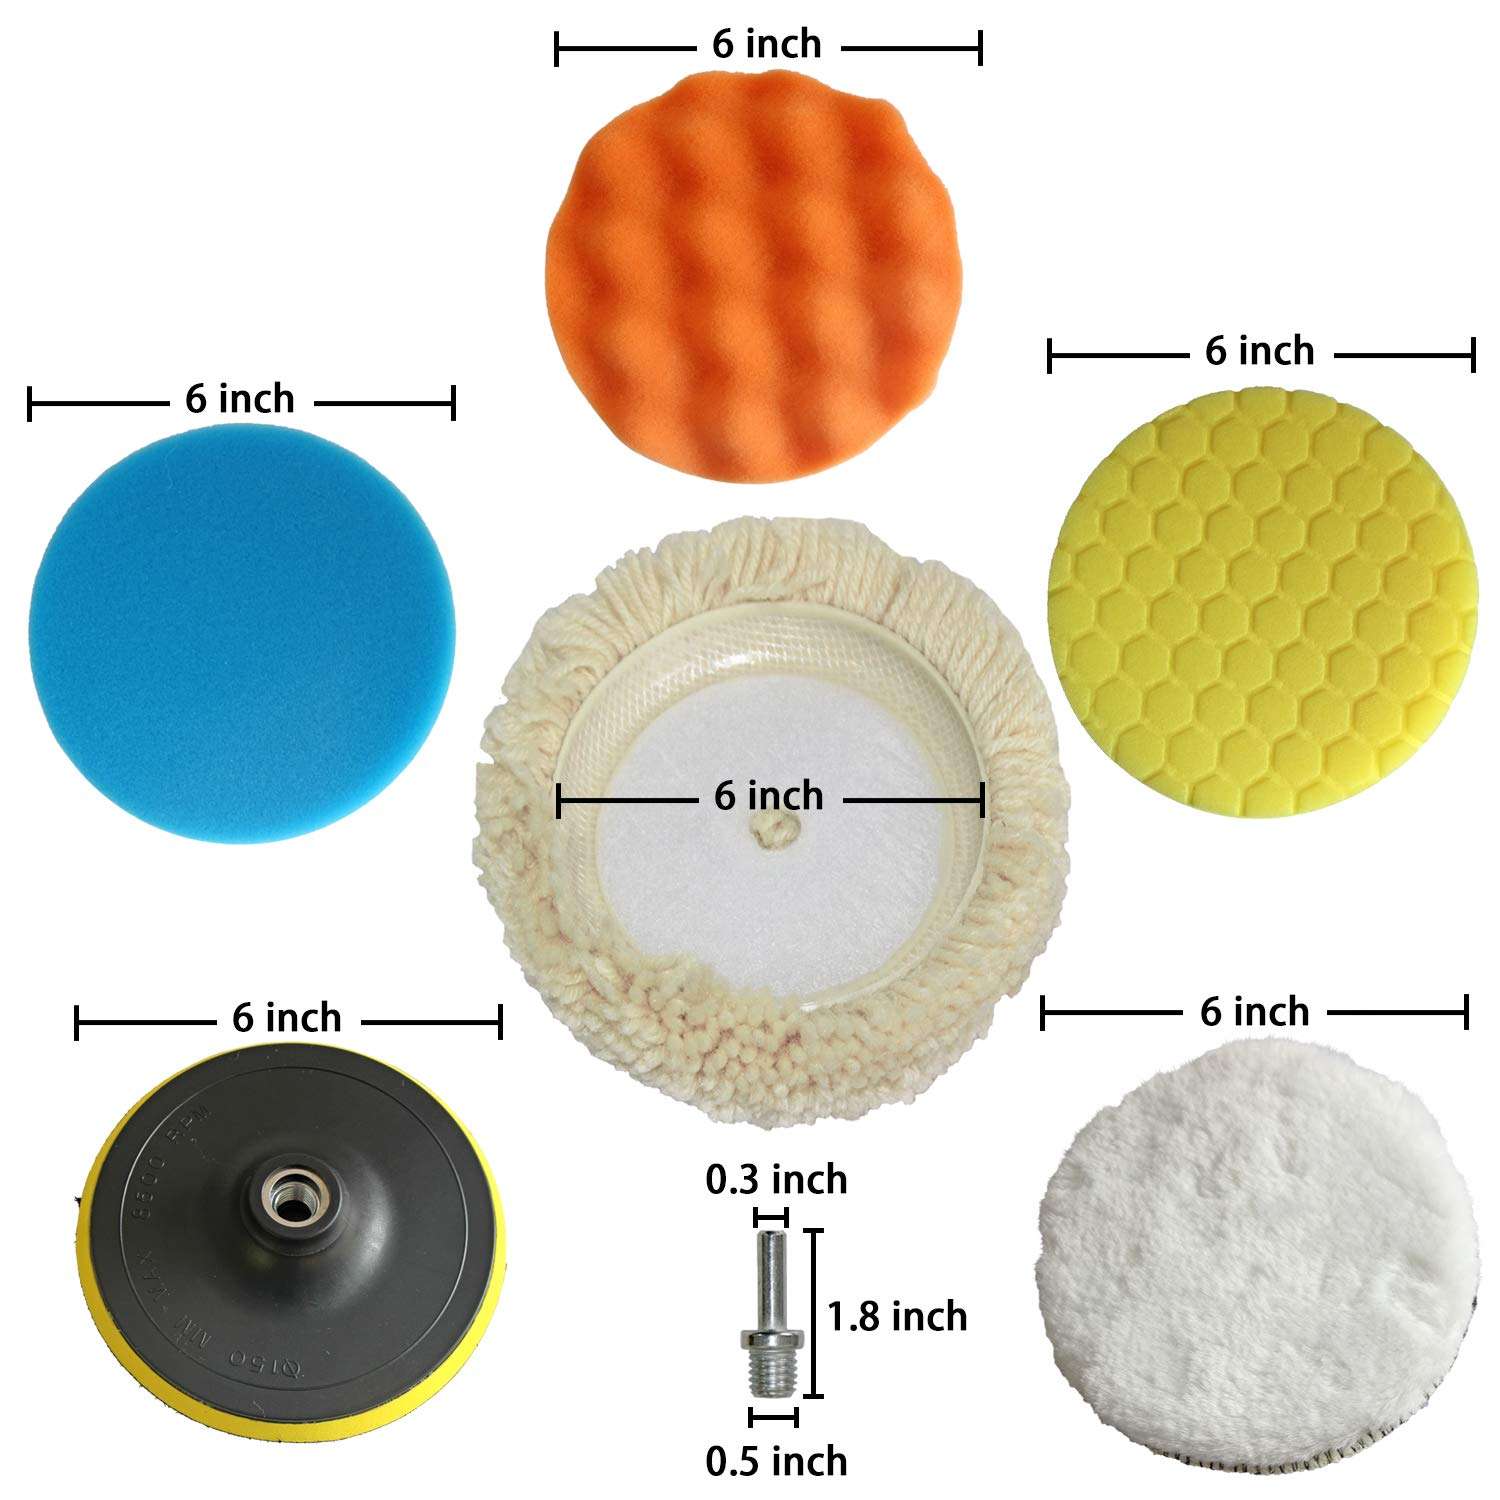 Polishing Pad Buffing Wheel Kit 10PCS with Waffle Foam & Lambs Wool Hook and 6inch Polishing Buffer Wool with M14 Drill Adapter Fit for Metal Aluminum Stainless Steel Chrome Wood Plastic Glass etc by Medoon (Image #2)